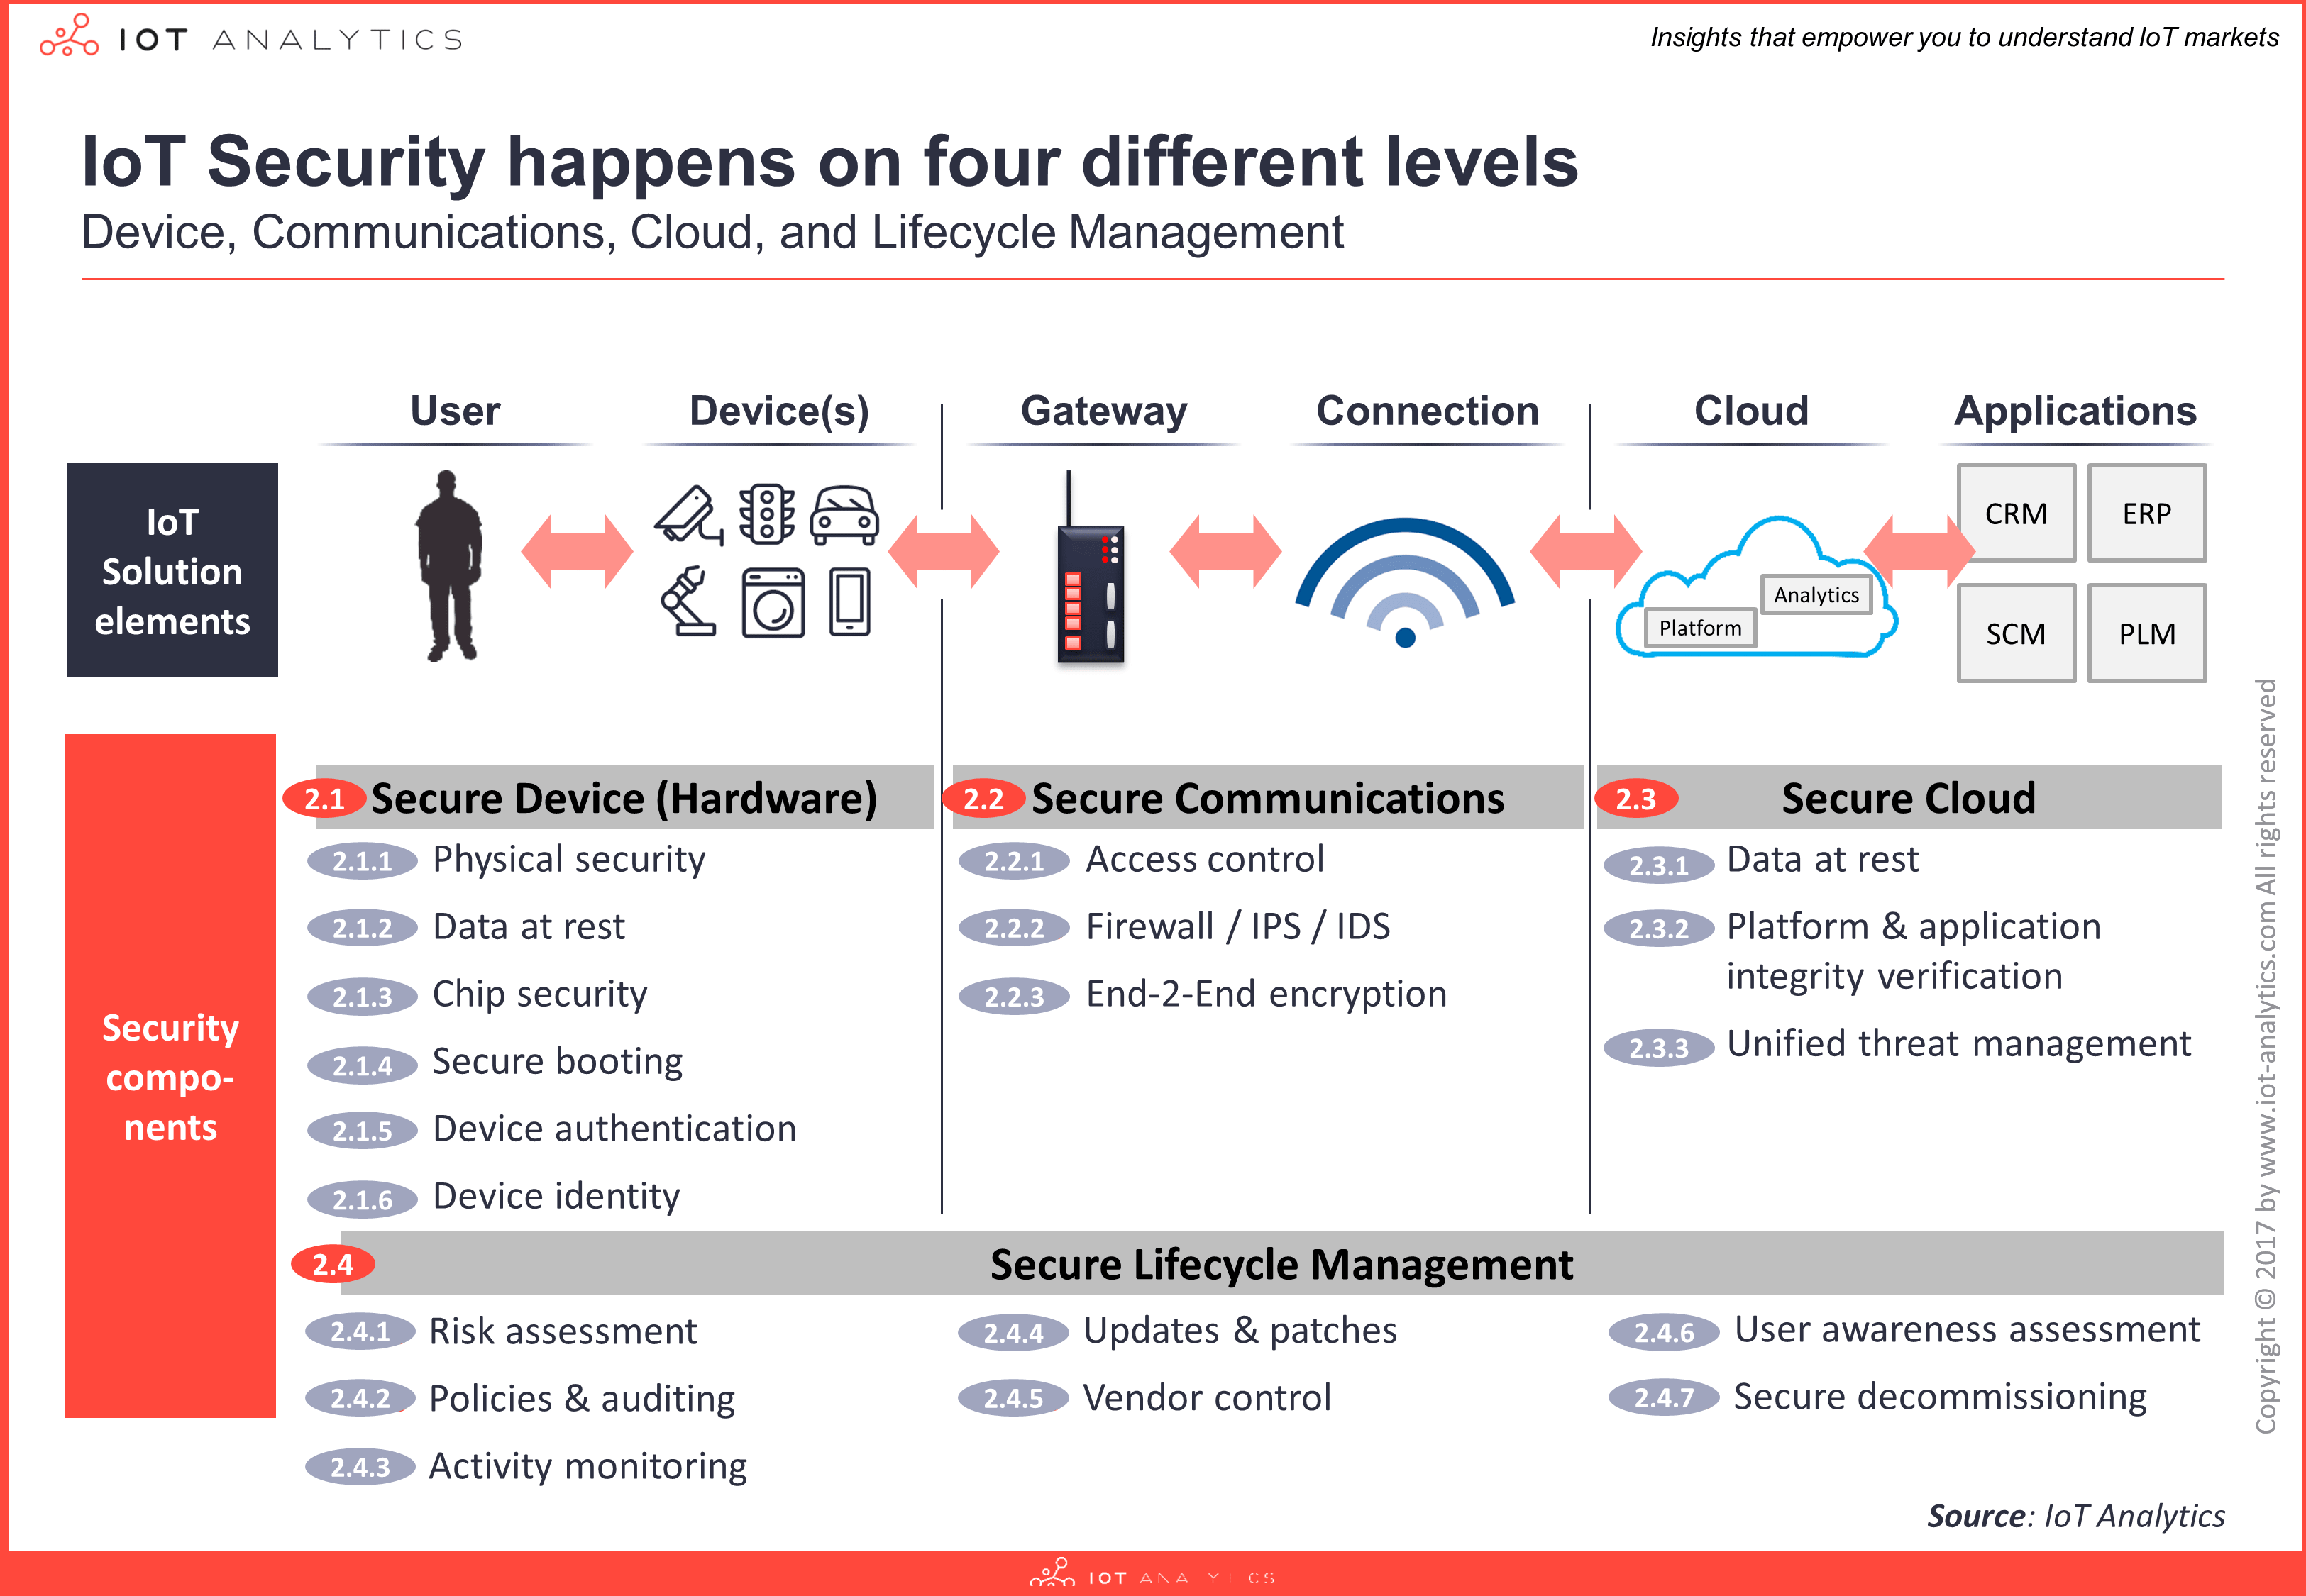 IoT Security Happens on Four Different Levels Image  - 4layers min - 5 Things To Know About IoT Security